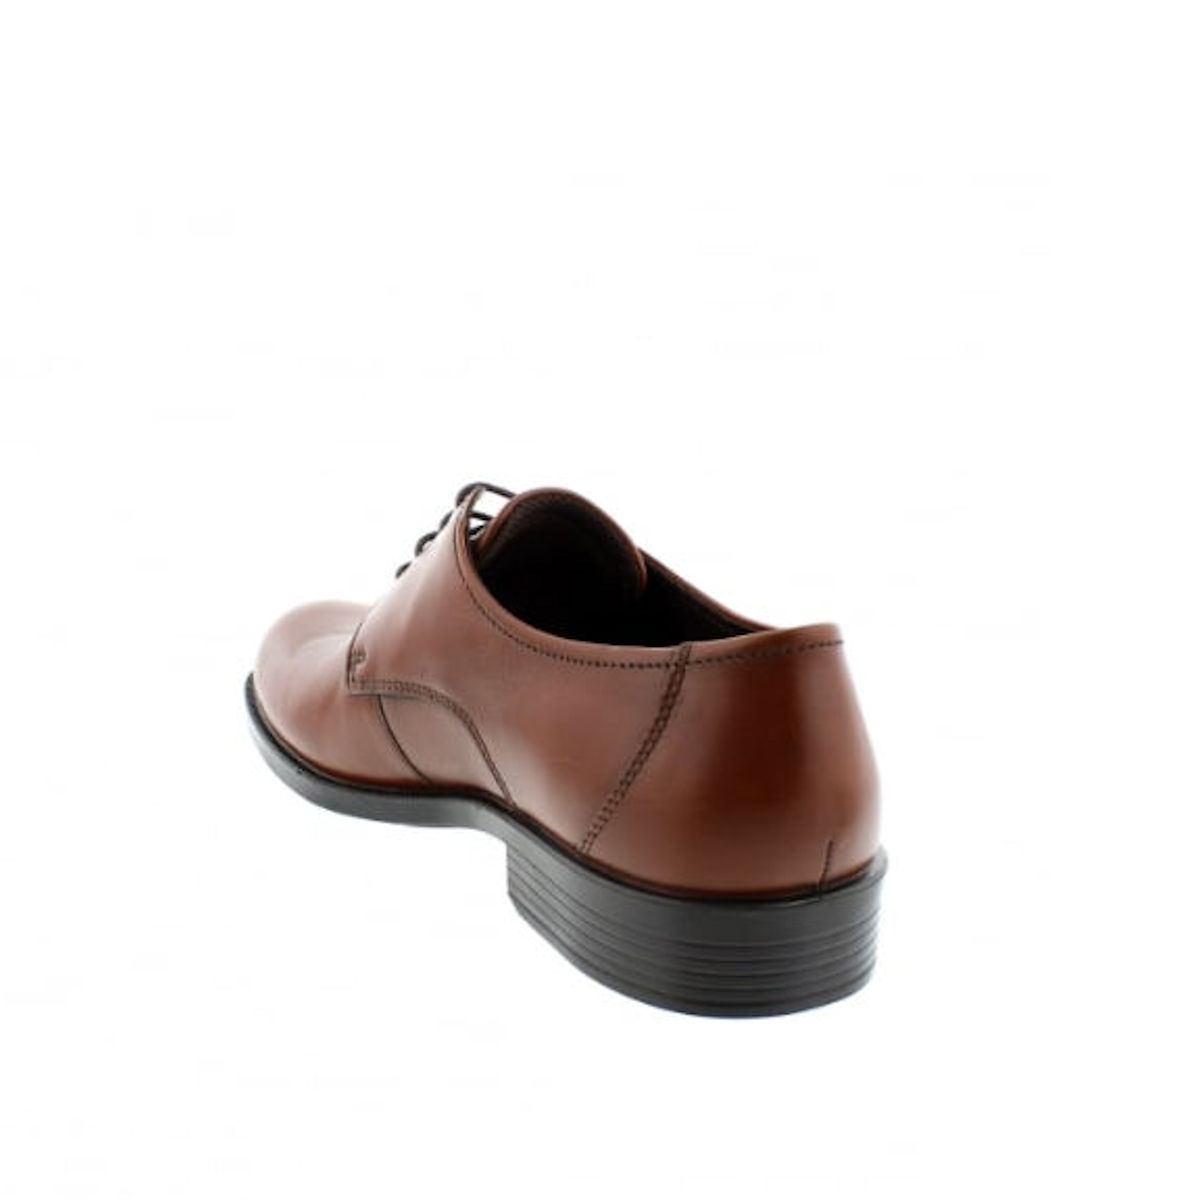 ECCO Harold - Mens Cognac Brown Leather Derby Shoe